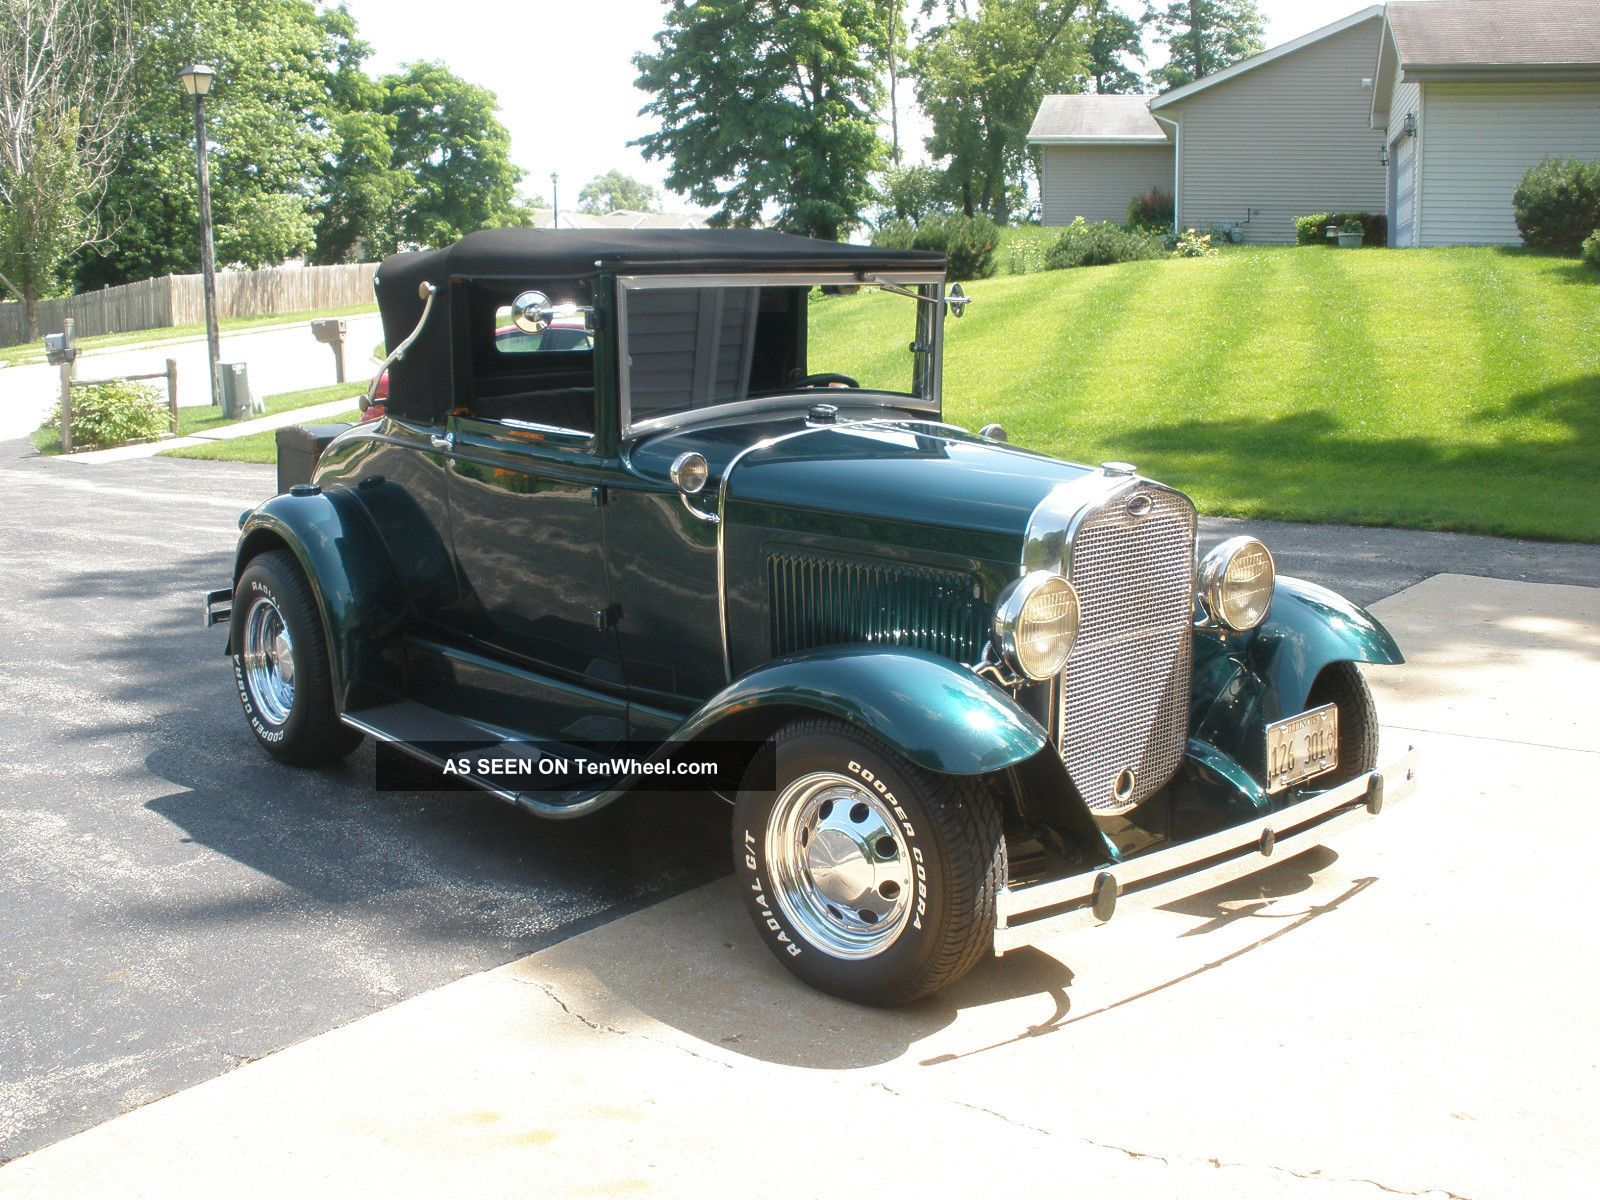 Ford 1930 Model A Cabriolet All Steel Street Rod. Model A photo